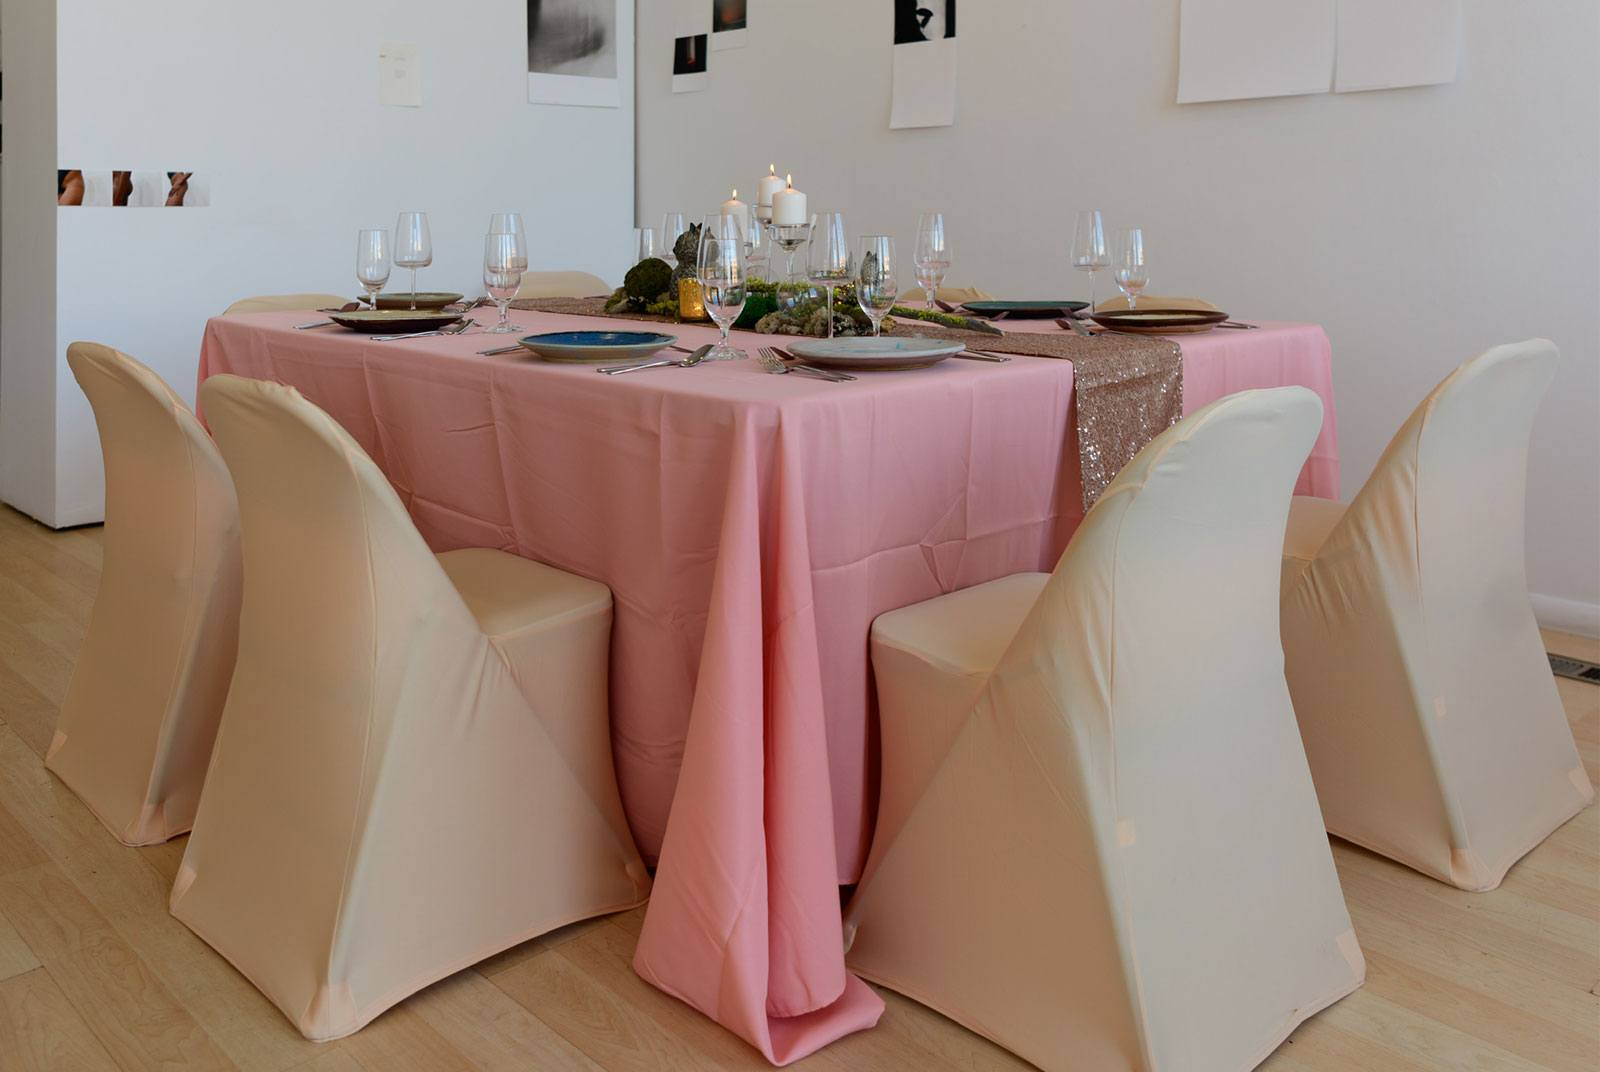 A decorative table setting